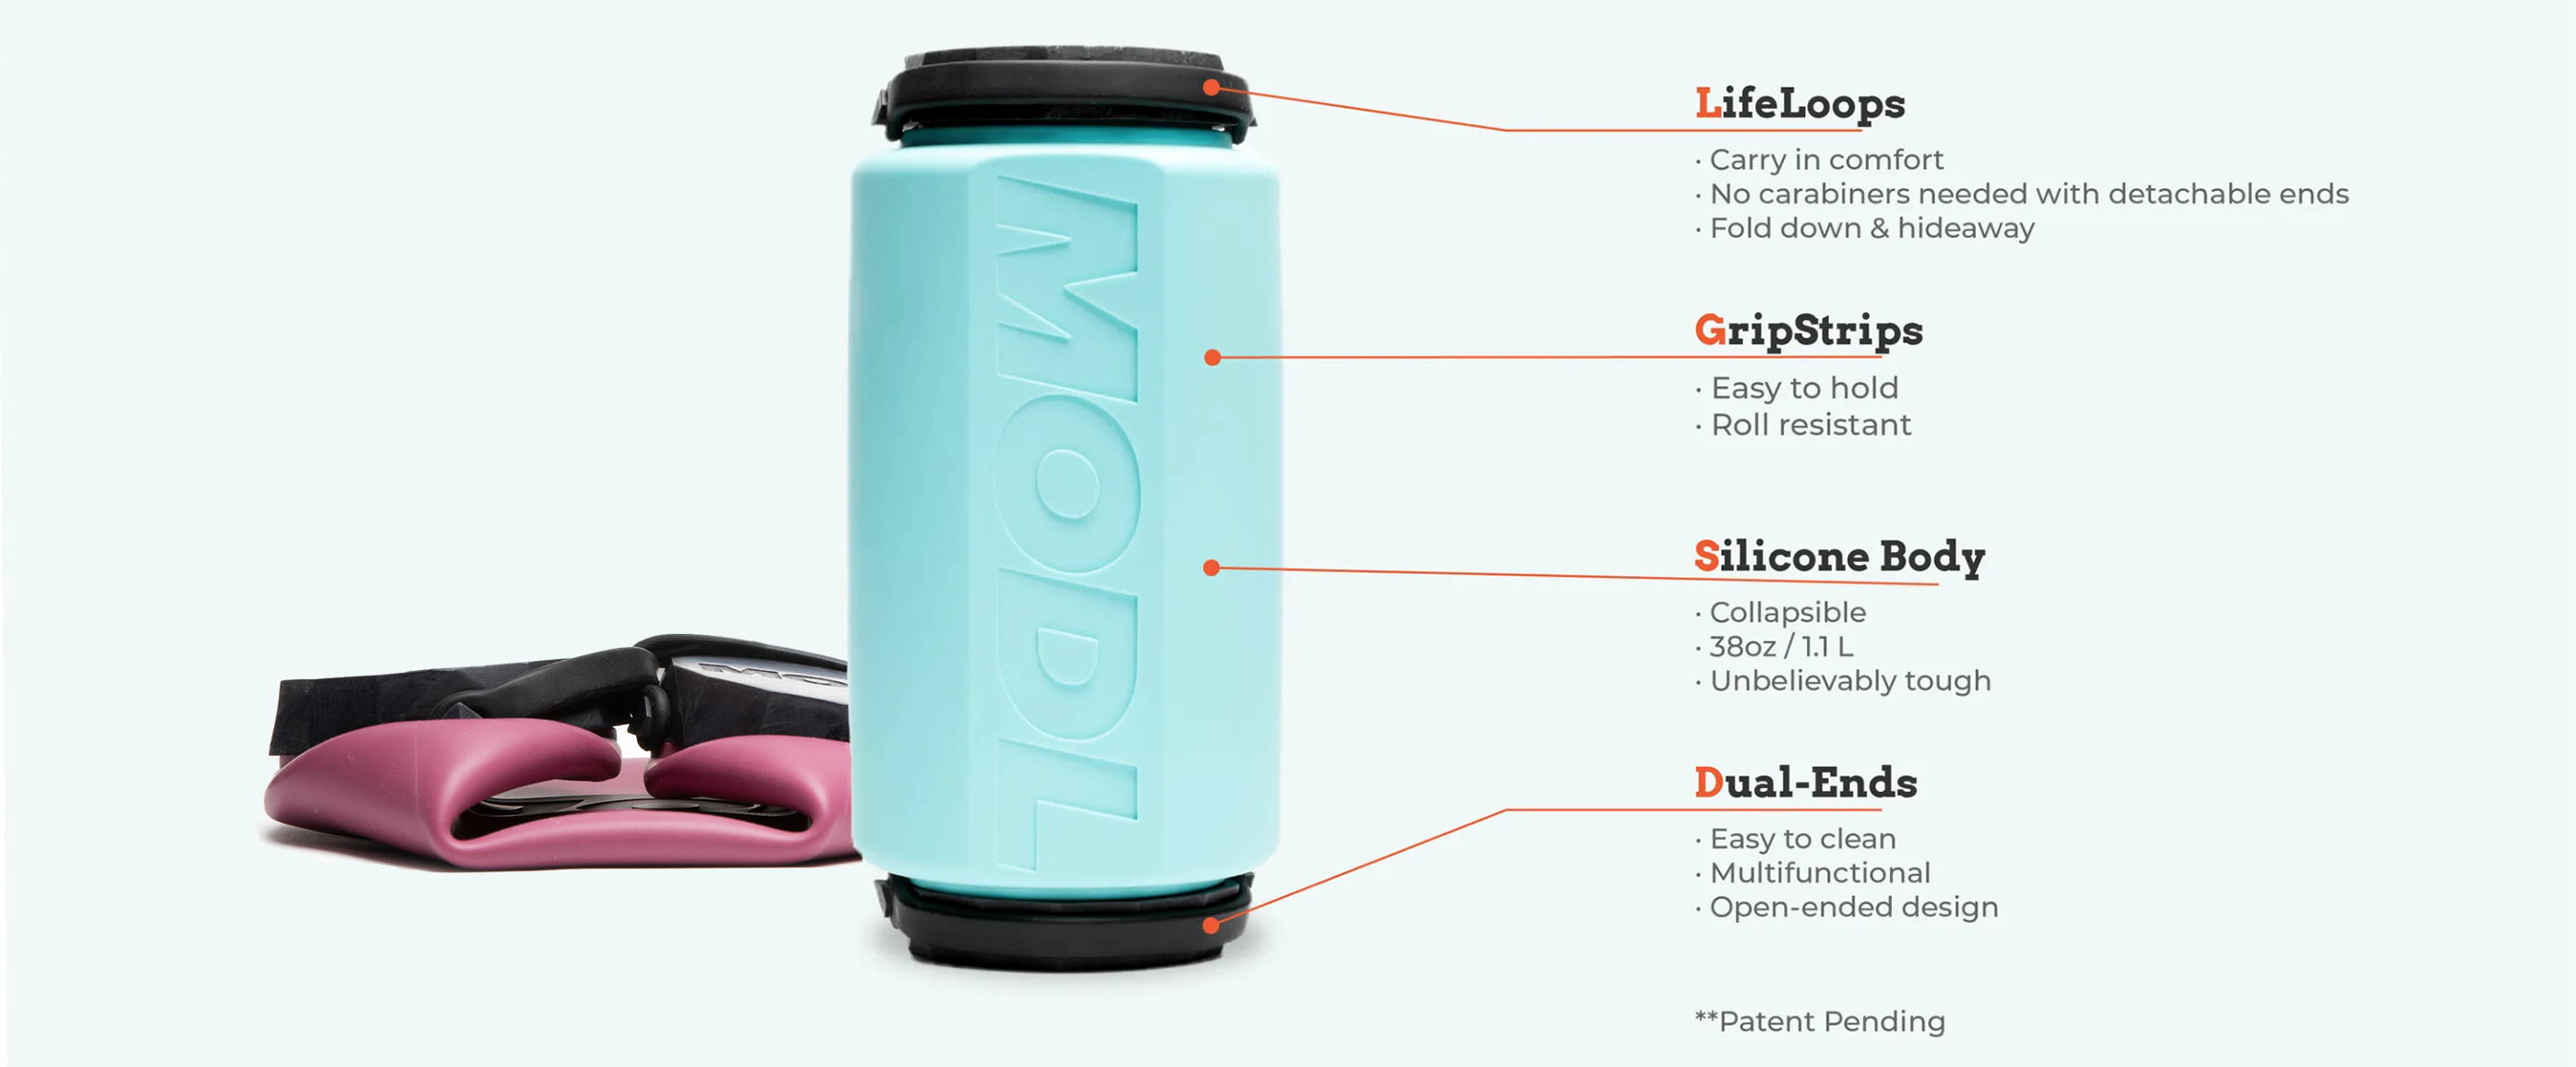 Diagram showing the benefits of MODL water bottle over traditional water bottles